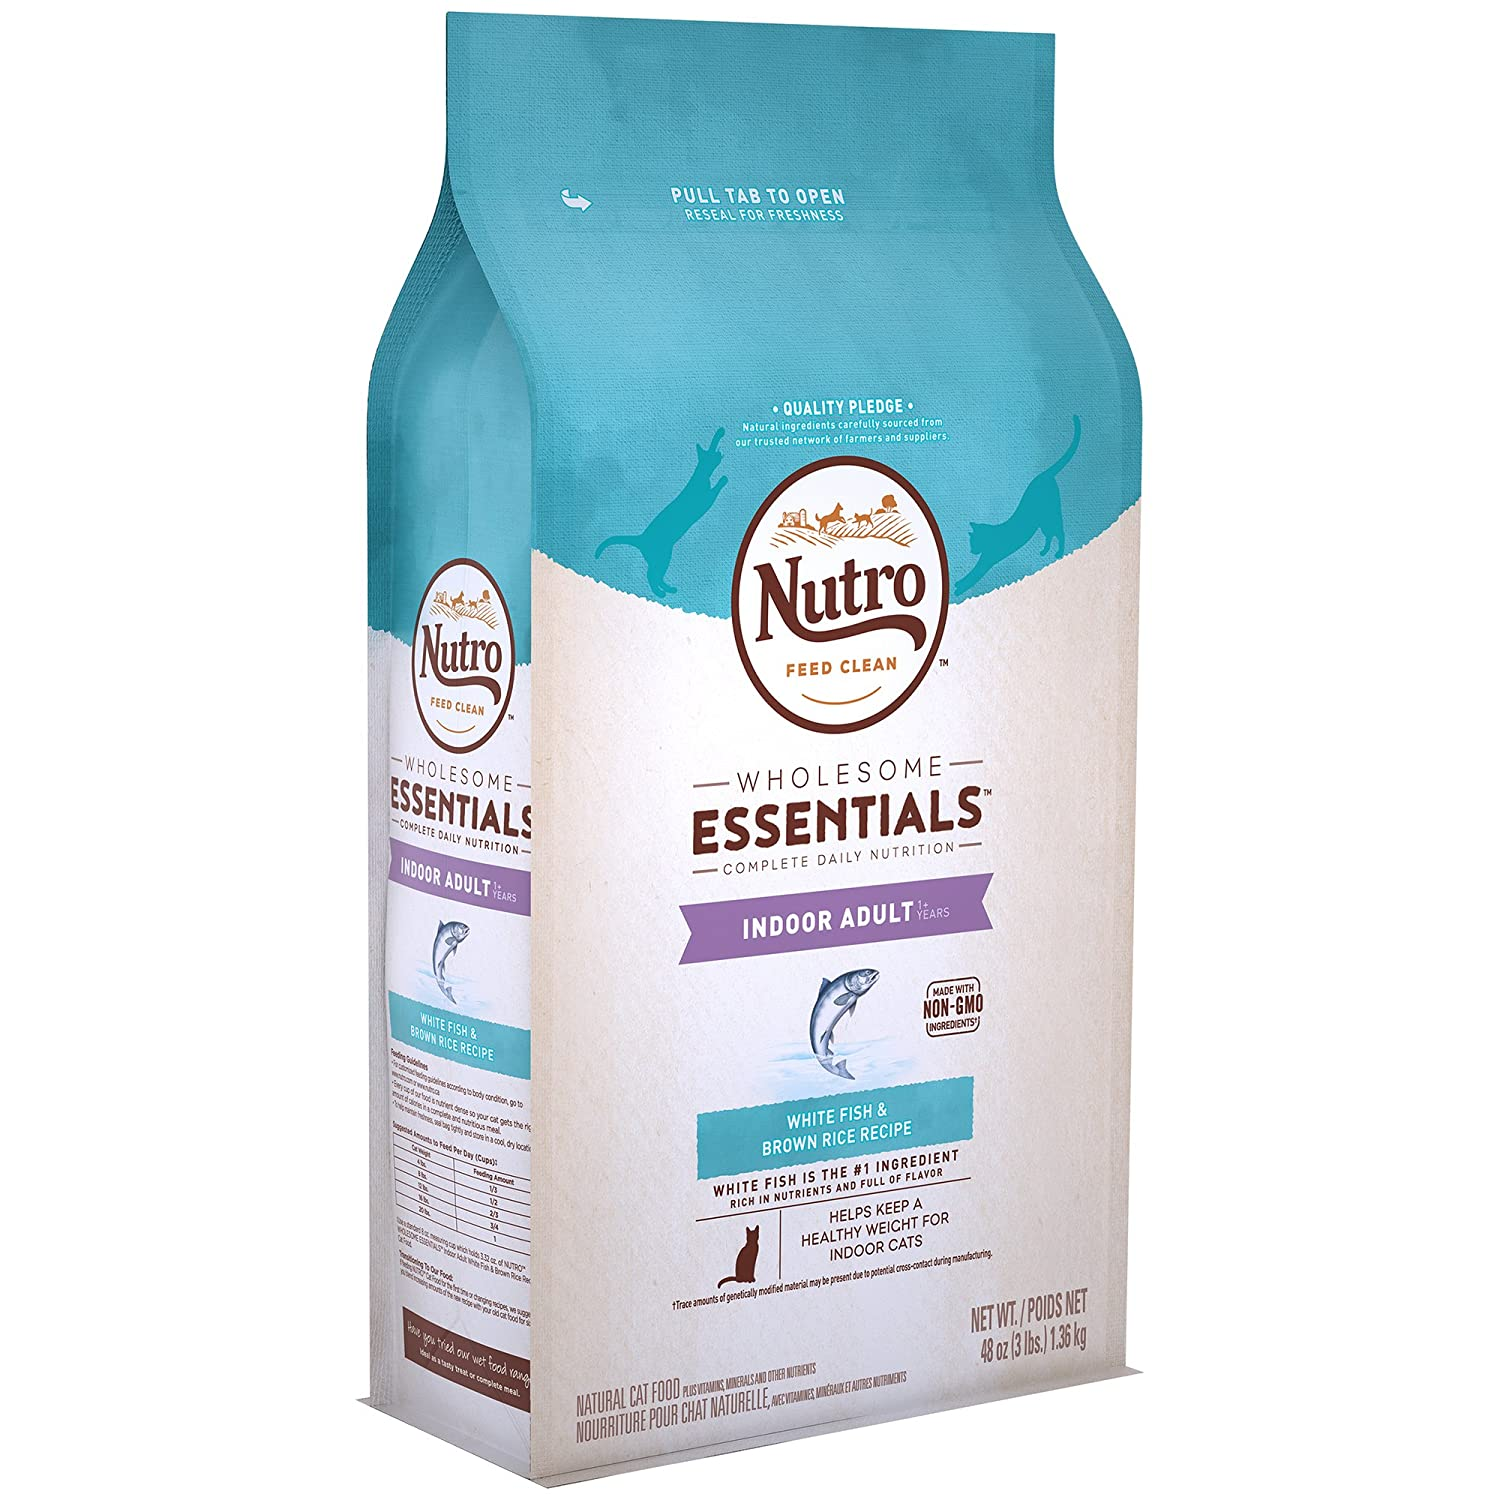 Nutro Wholesome Essentials Indoor Adult Dry Cat Food White Fish & Brown Rice Recipe, 3 Lb. Bag